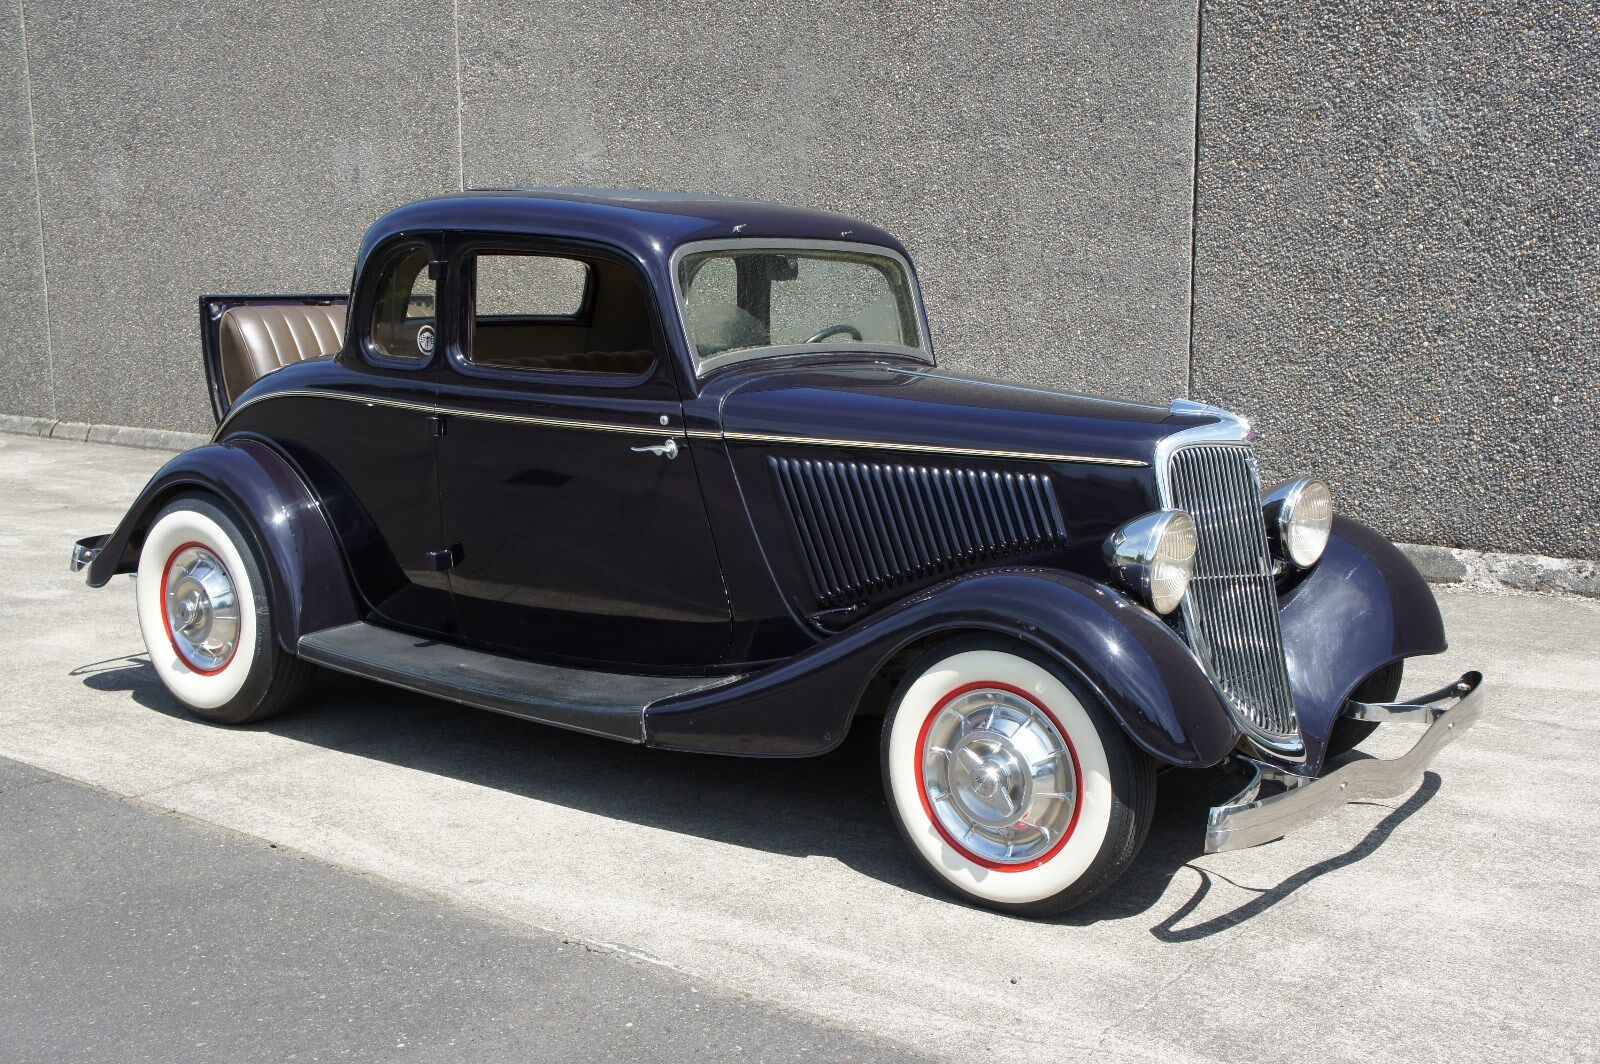 1934 Ford Model 40  1934 FORD 3W COUPE PERIOD SURVIVOR HOT ROD, EXCEPTIONAL CONDITION, ALL STEEL